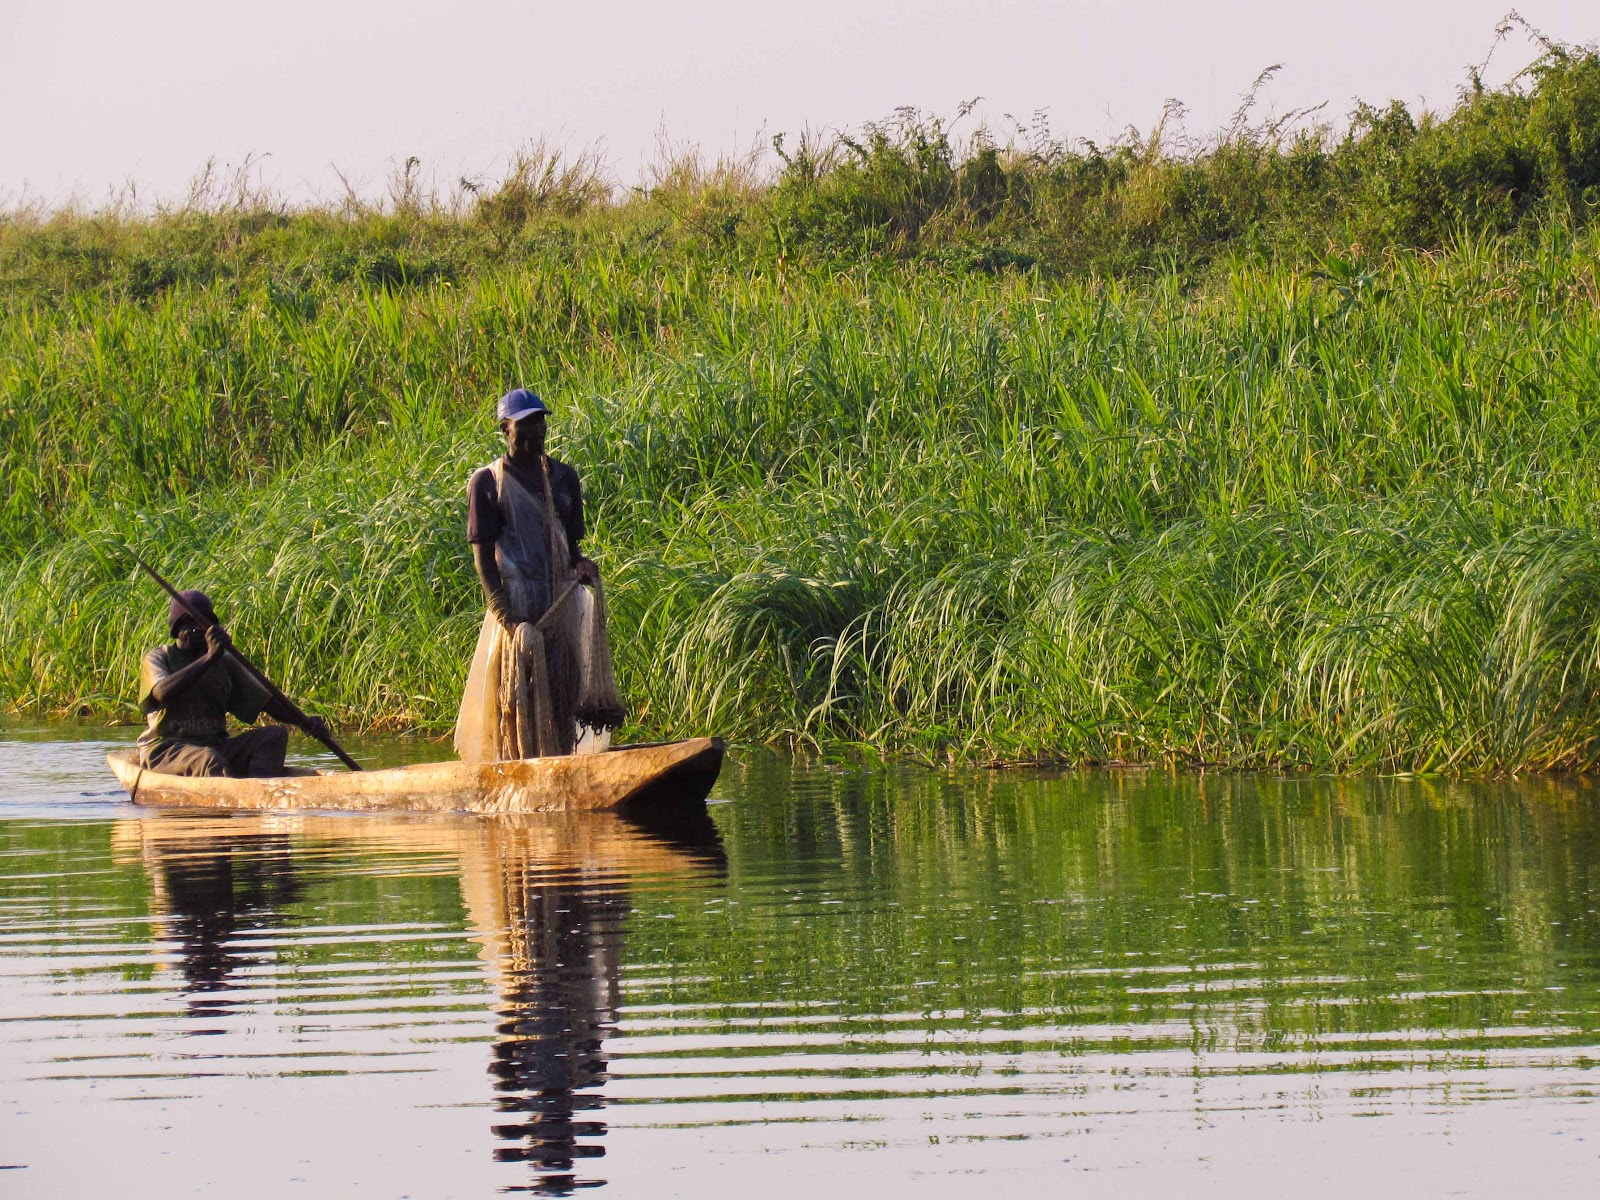 Democratic Republic of the Congo, Lufira River